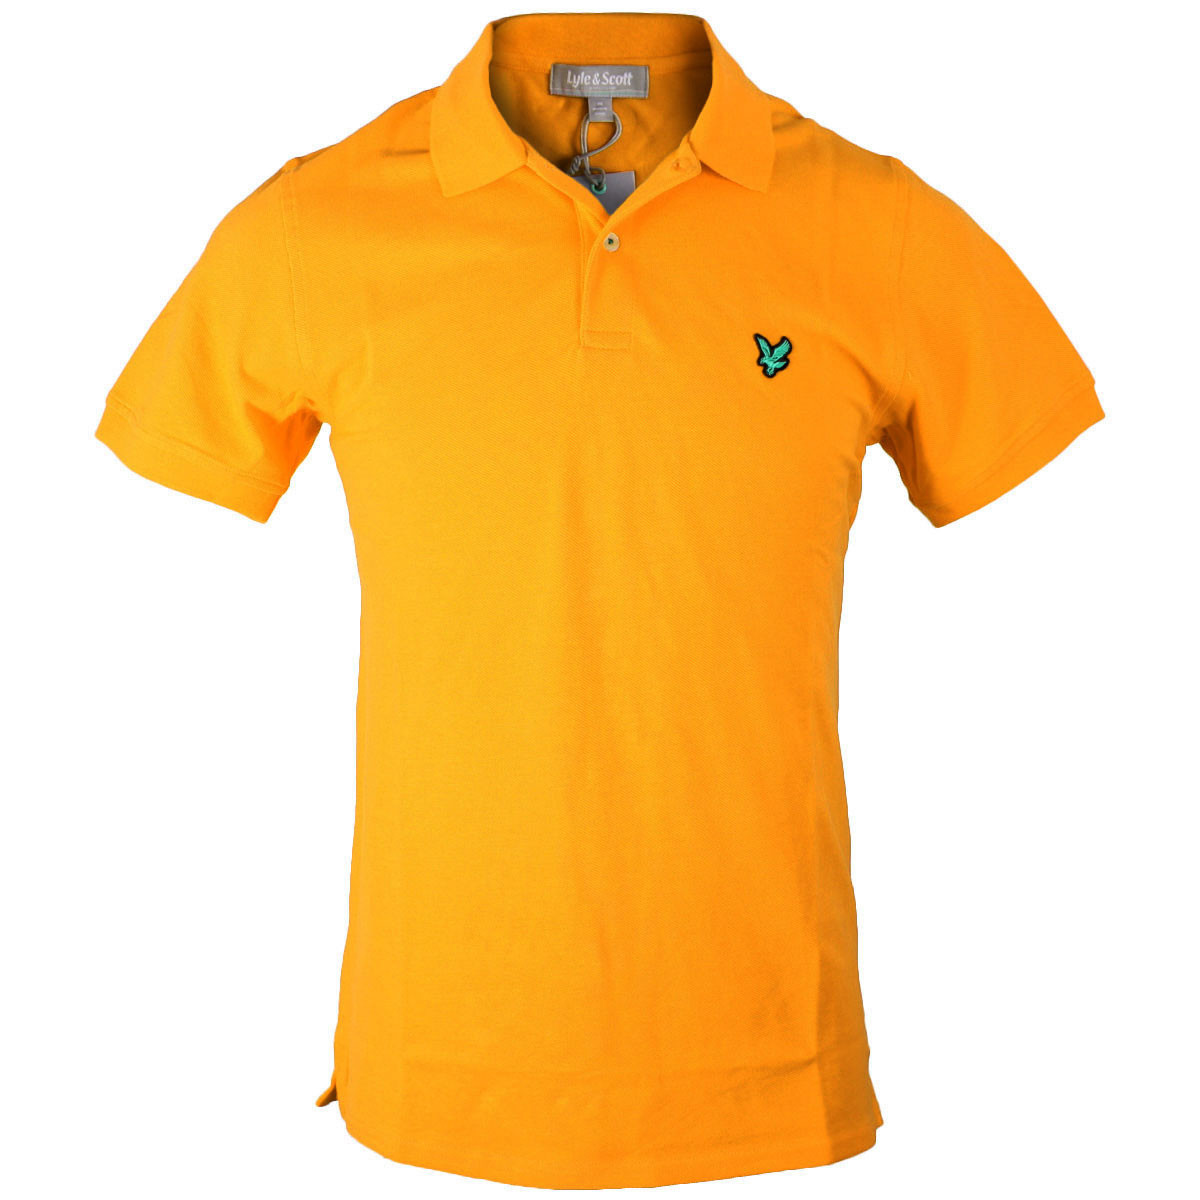 f4f3e3a9 Lyle & Scott Mens Green Eagle Club Cotton Golf Polo Shirt. Product code:  KB675C02